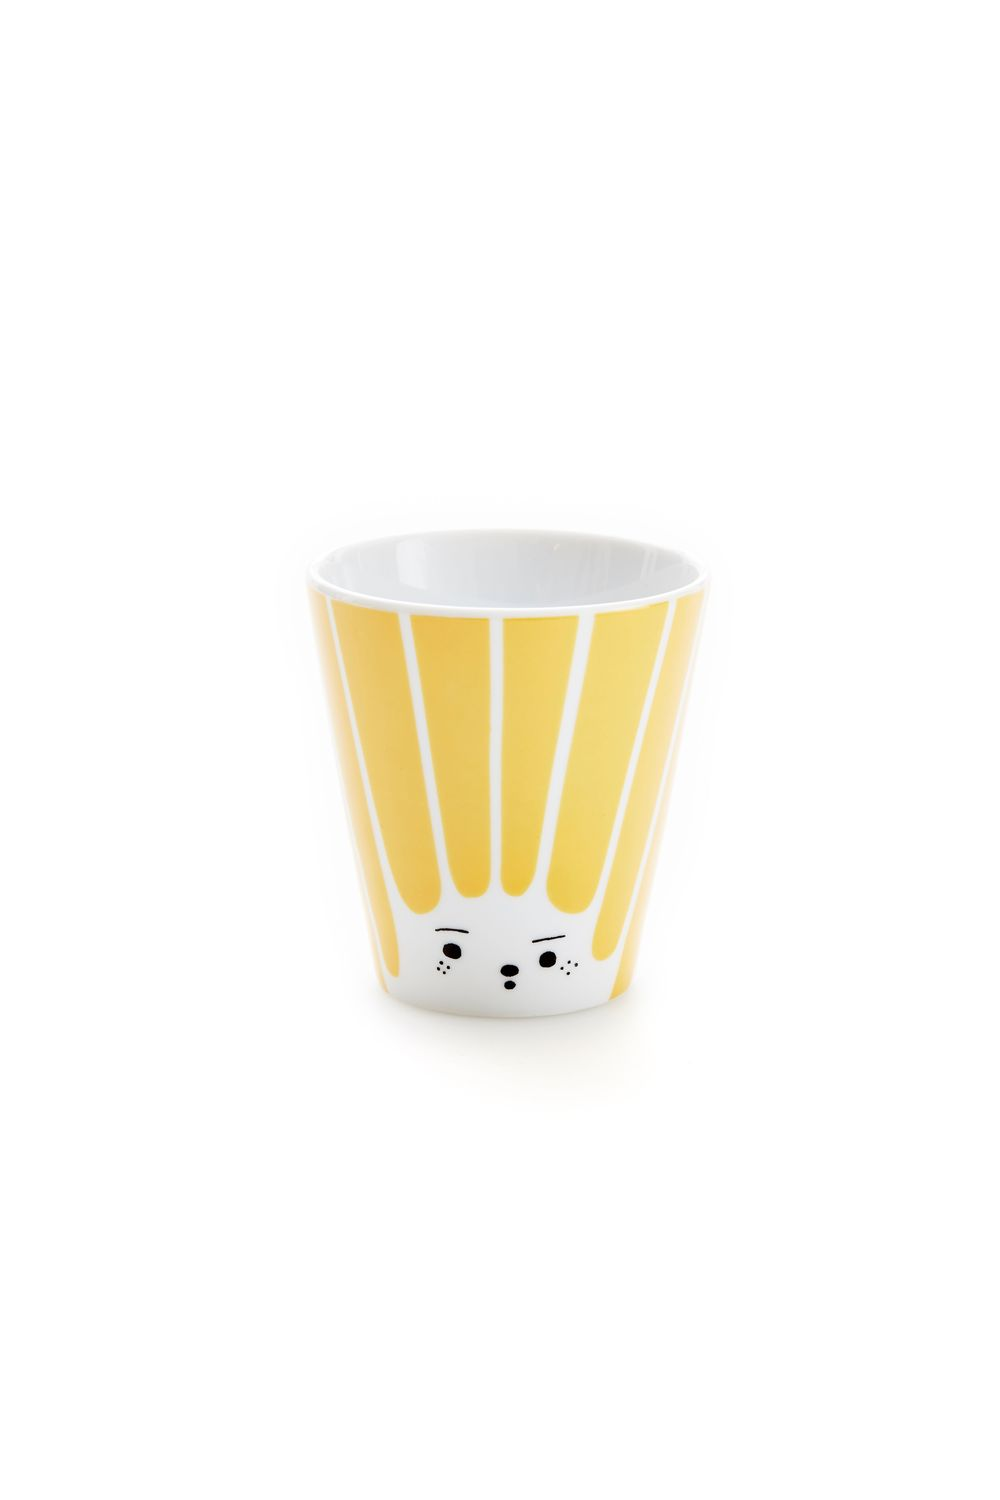 rym mug friednly face yellow.jpg